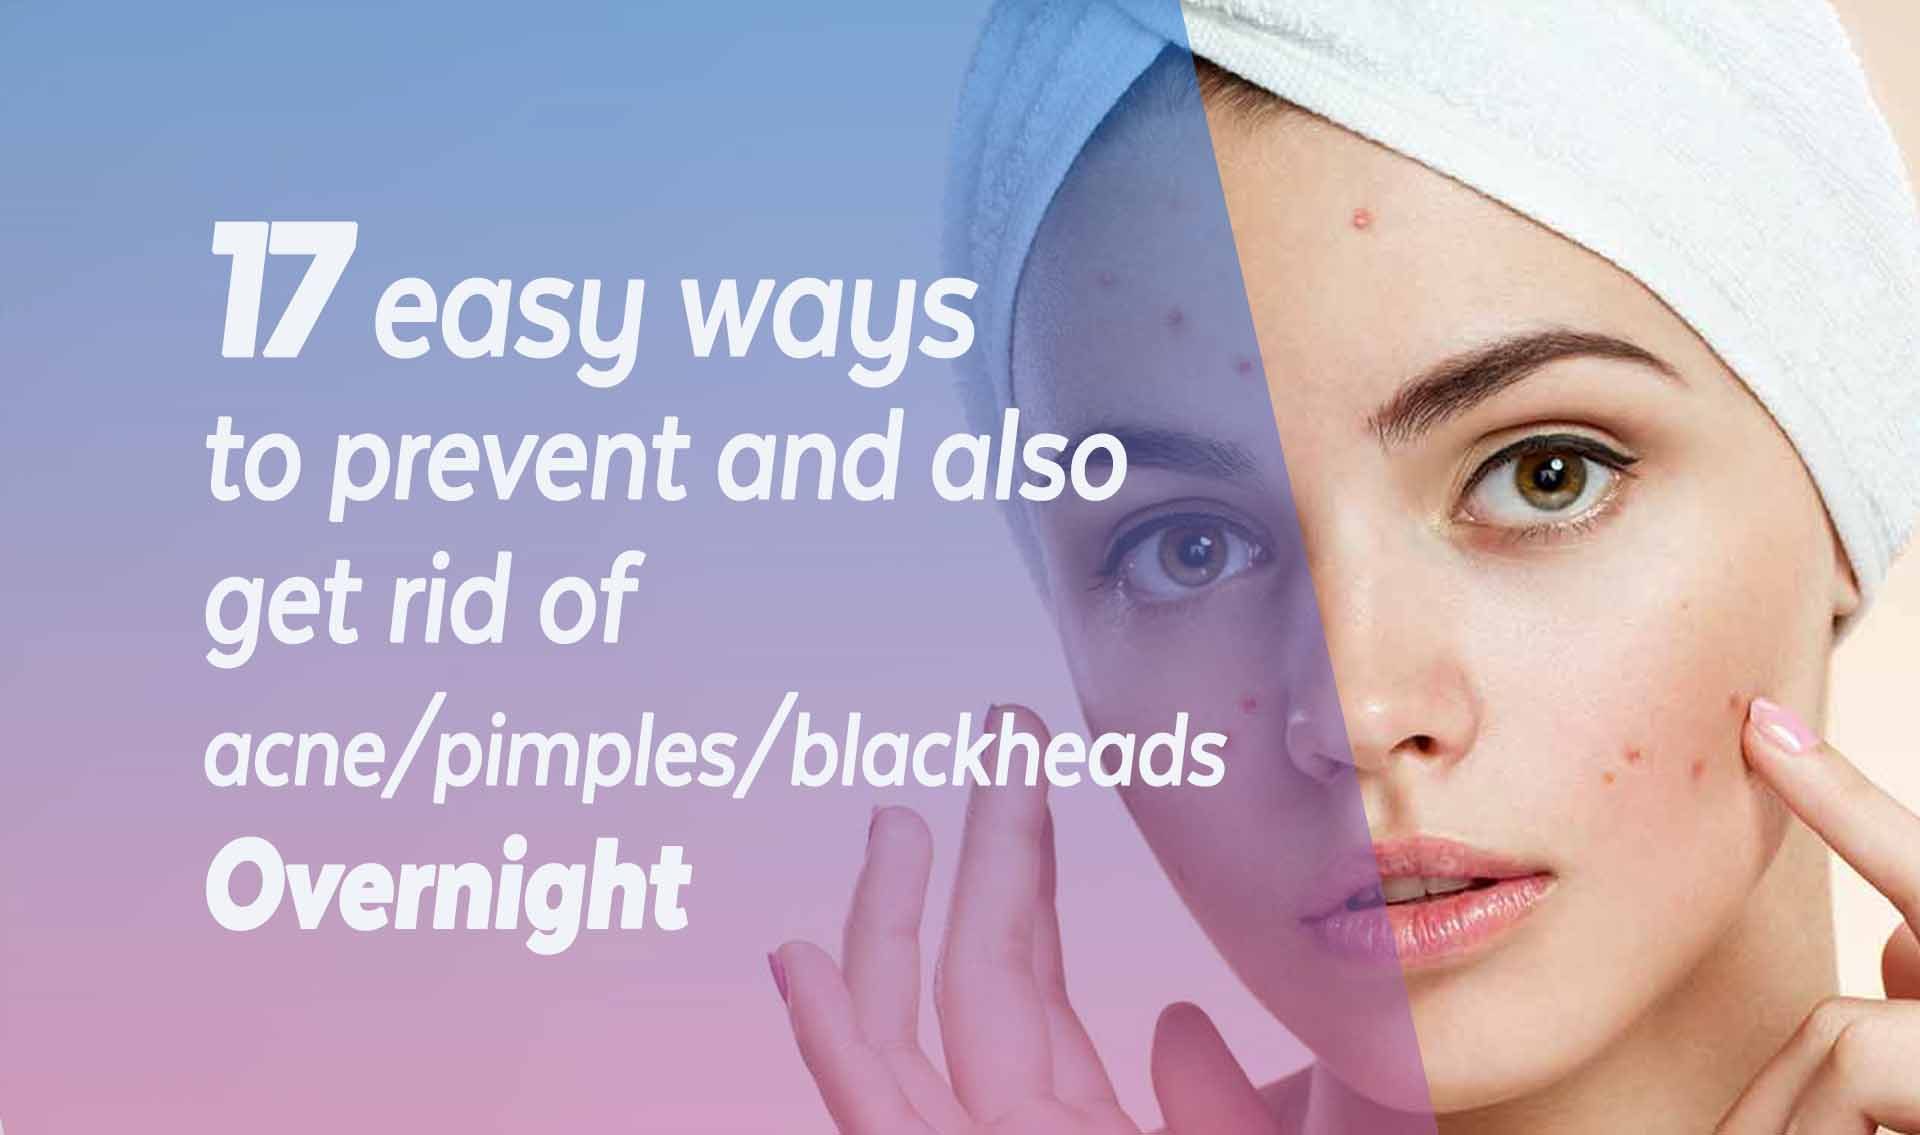 Get Rid of Ance pimples and blackheads